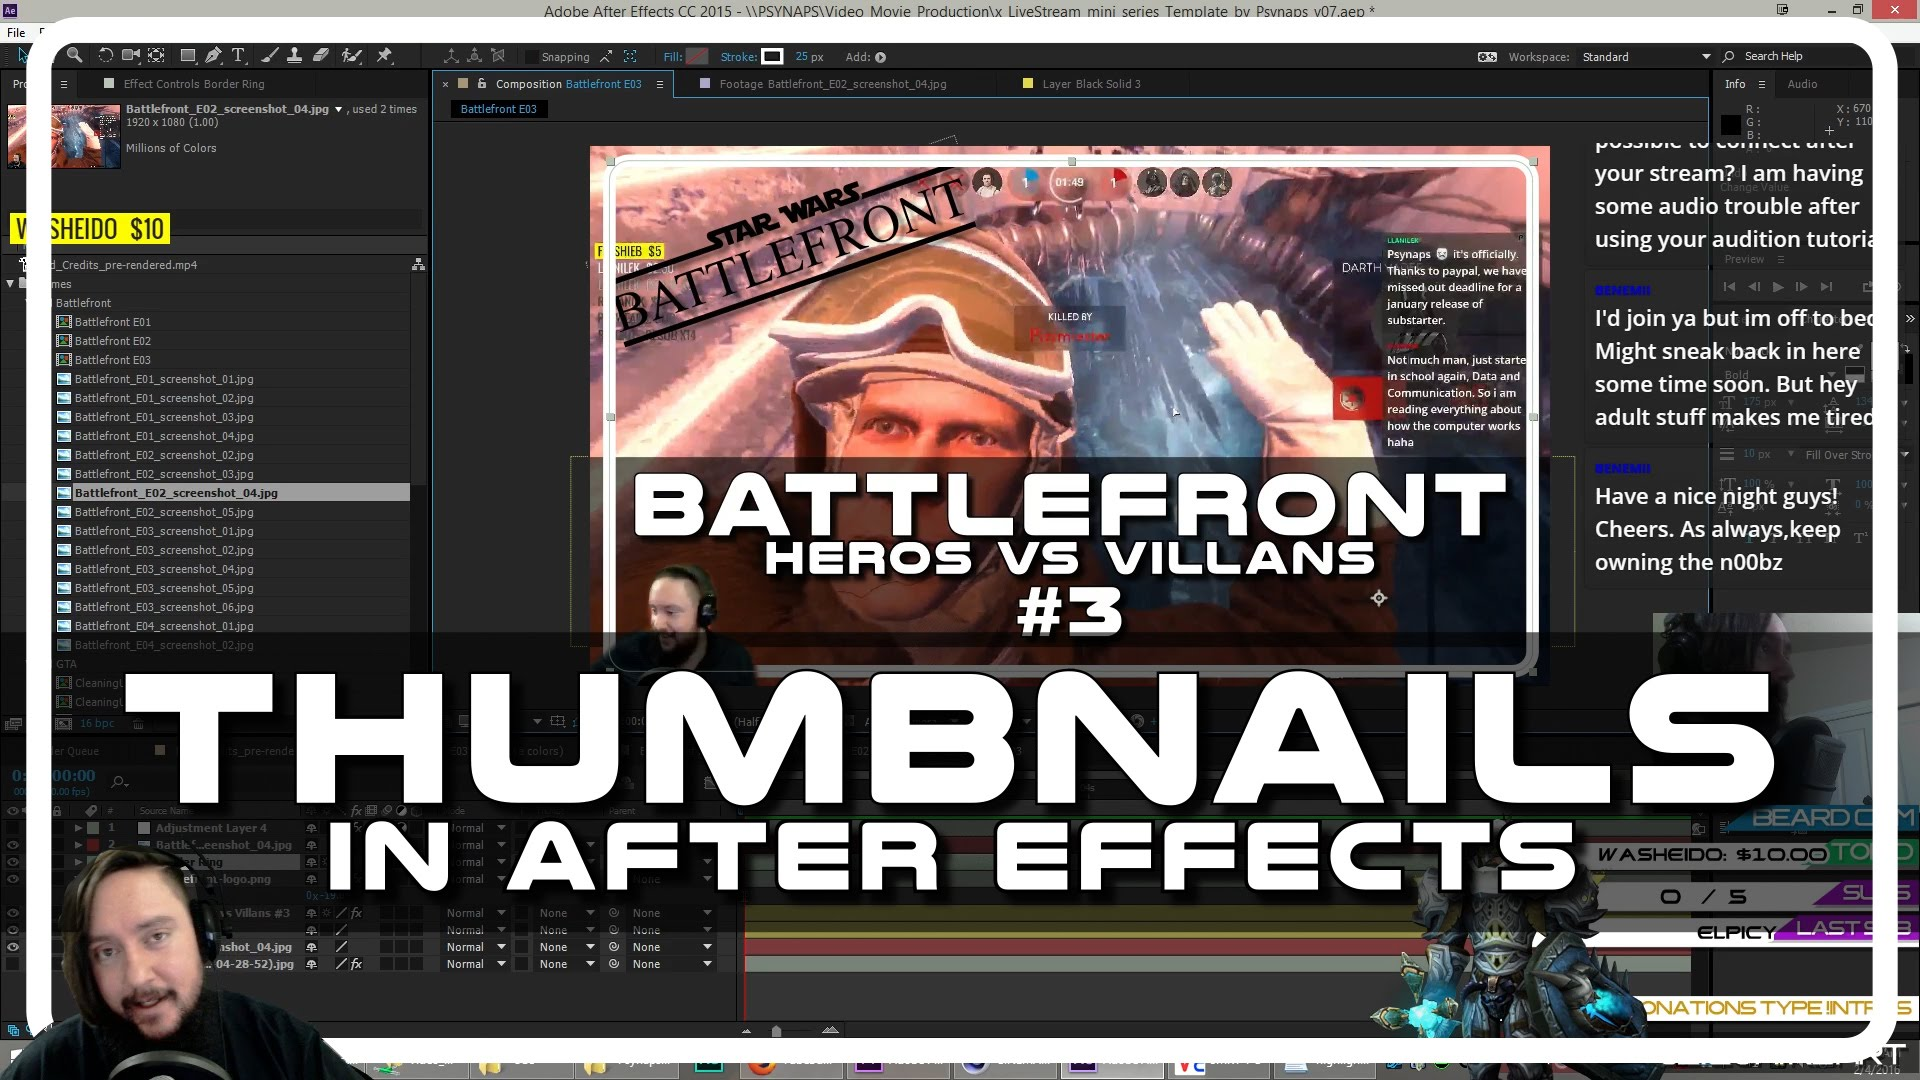 Thumbnail Maker in After Effects – Psynaps AE Tutorial